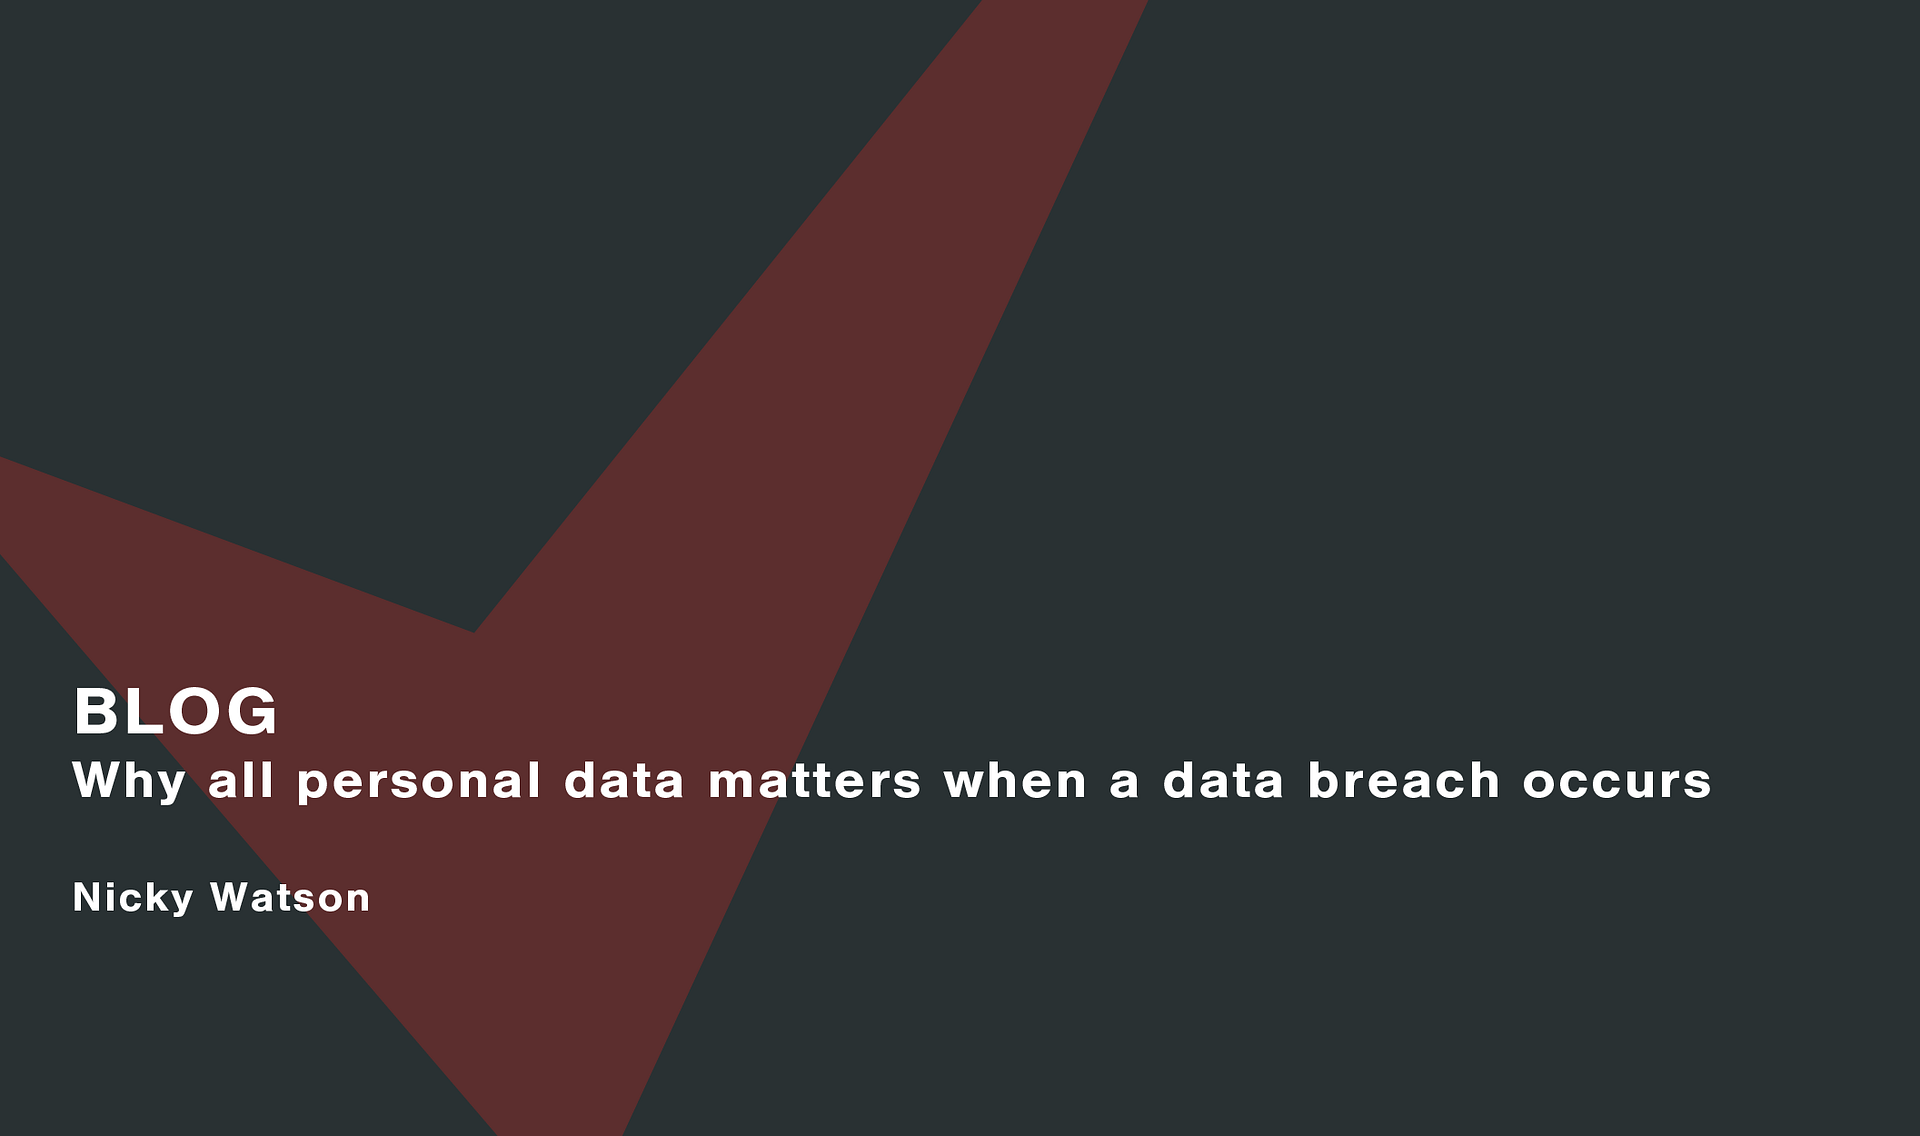 Why all personal data matters when a data breach occurs Cassie personal information & consent management